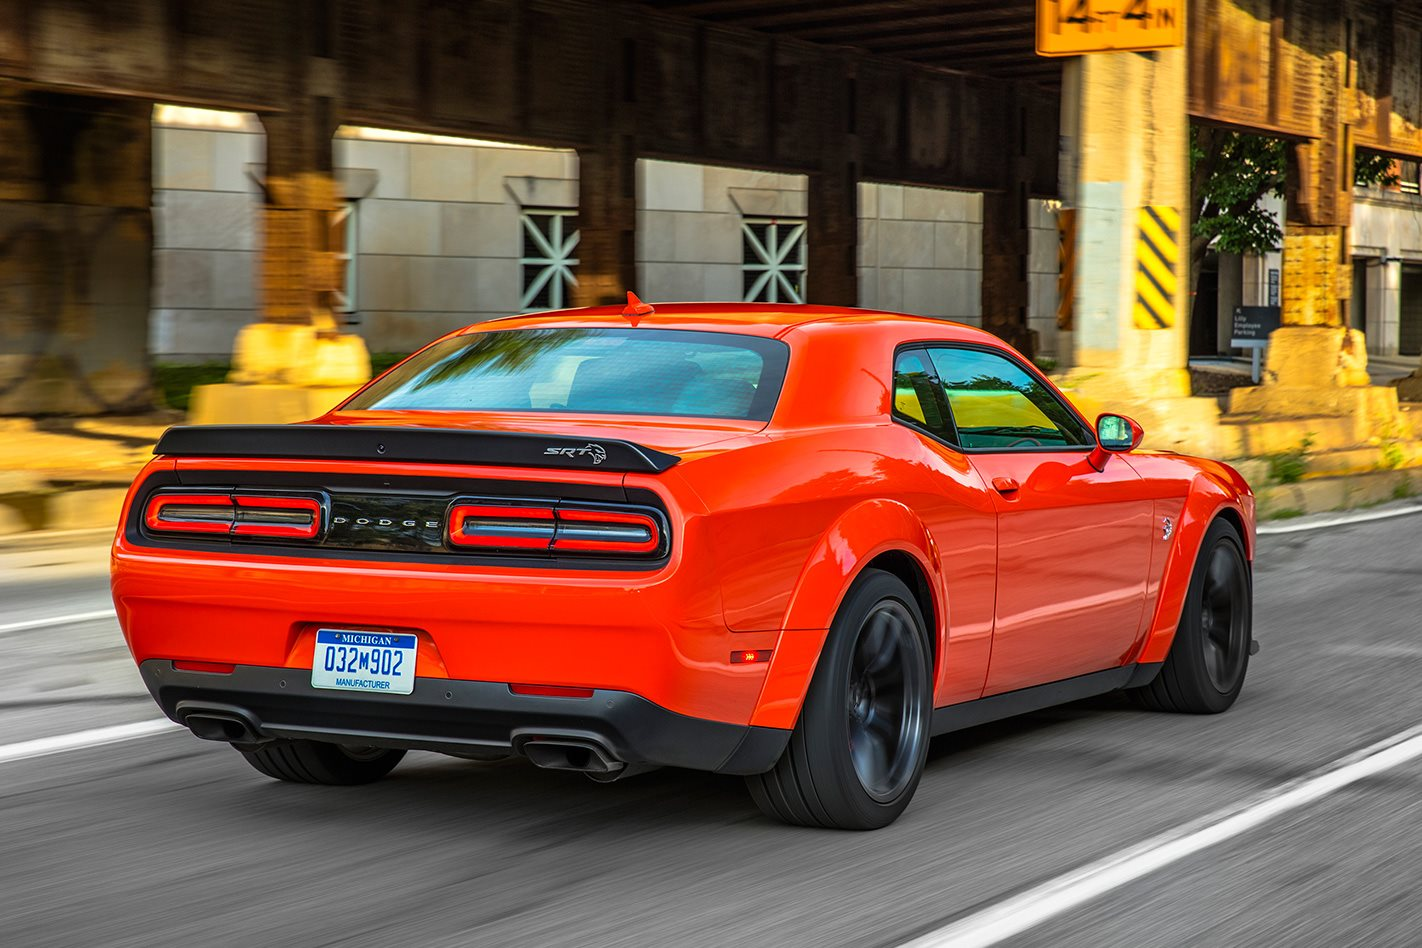 2018 Dodge Challenger Demon rear